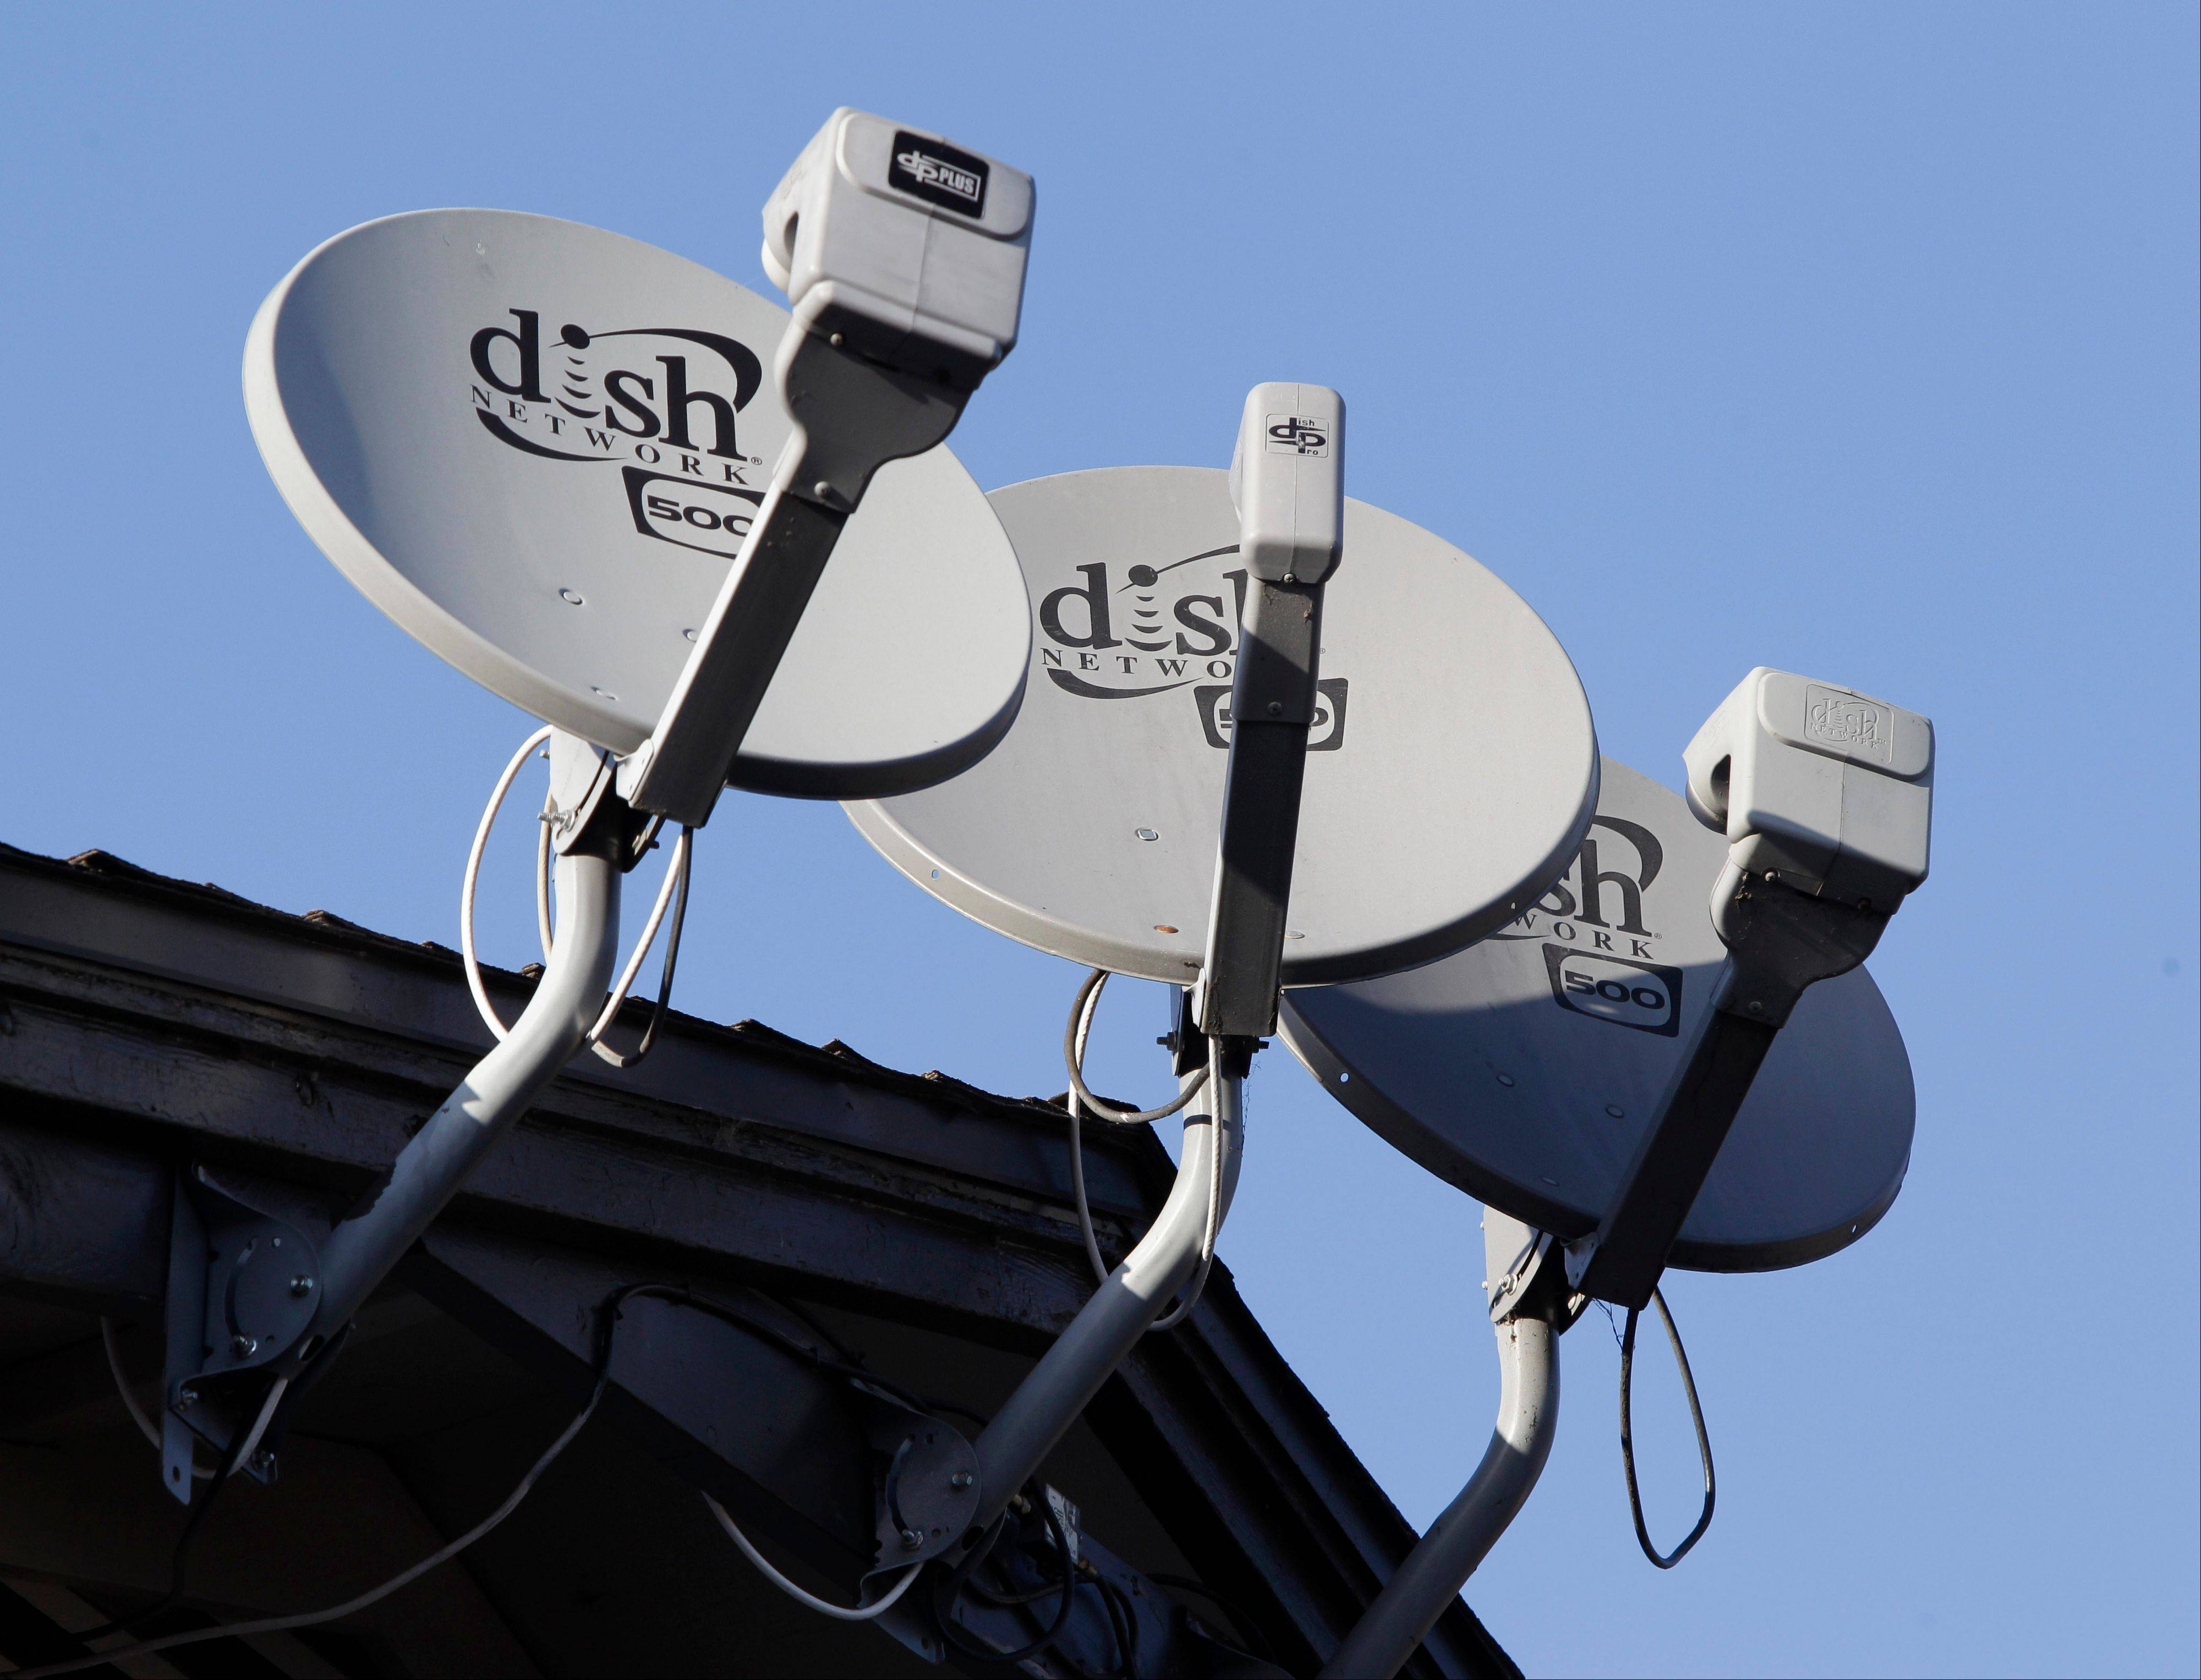 Sprint is suing to stop Dish Network�s buyout of wireless data network operator Clearwire. The nation�s third-largest cellphone carrier said the proposed deal violates the rights of Sprint and other Clearwire shareholders.